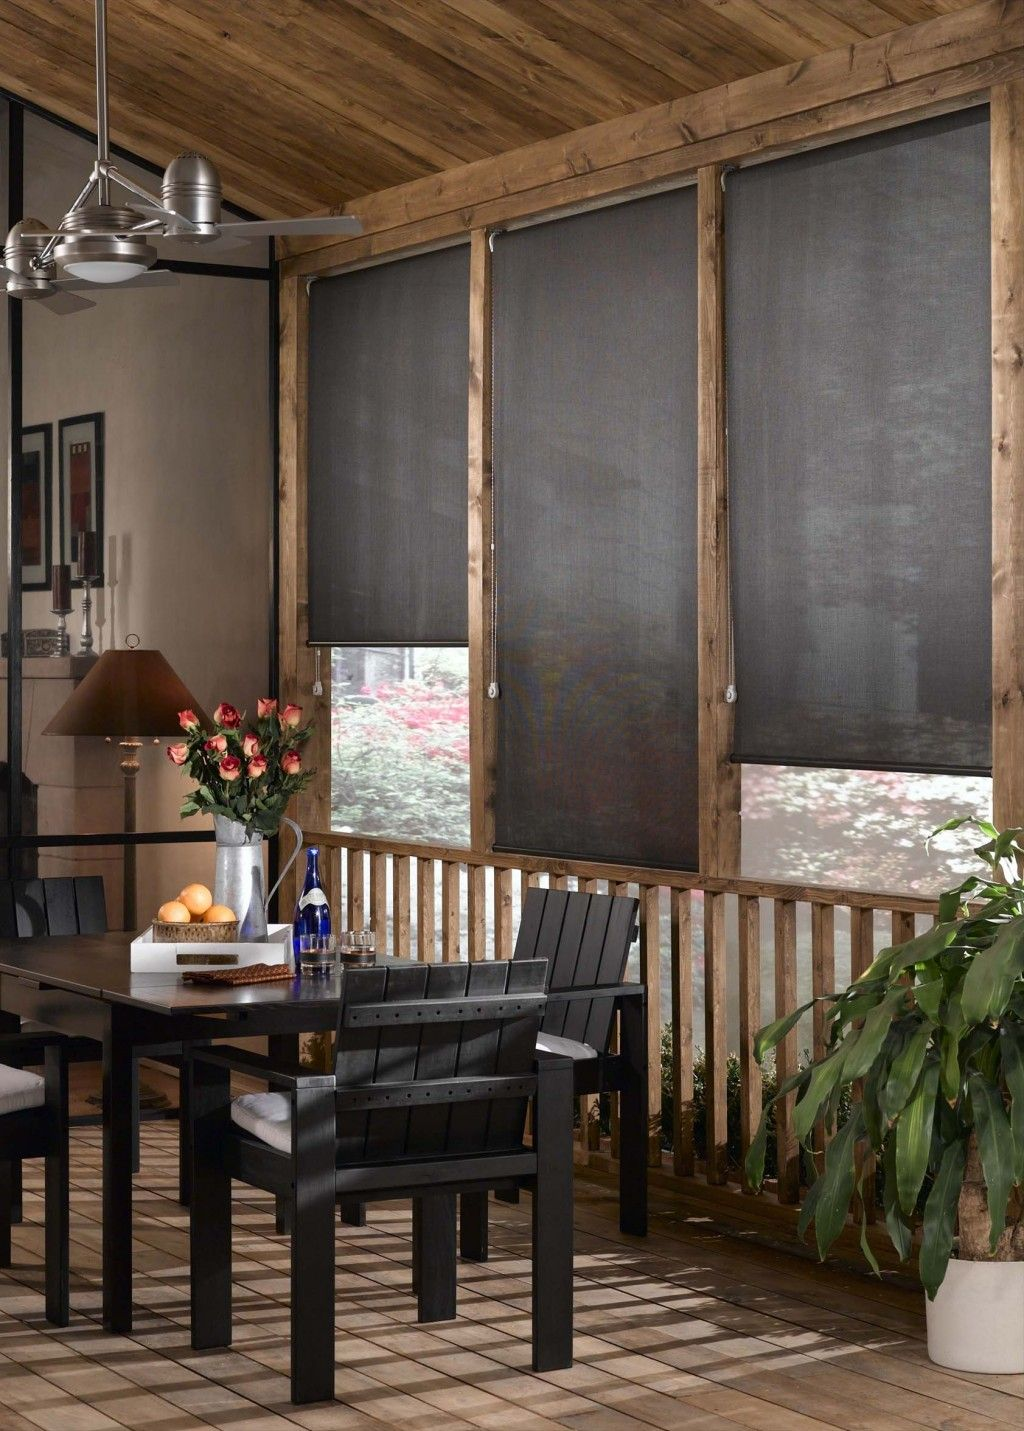 How To Repair Bamboo Blinds Lowes In 2020 With Images Patio